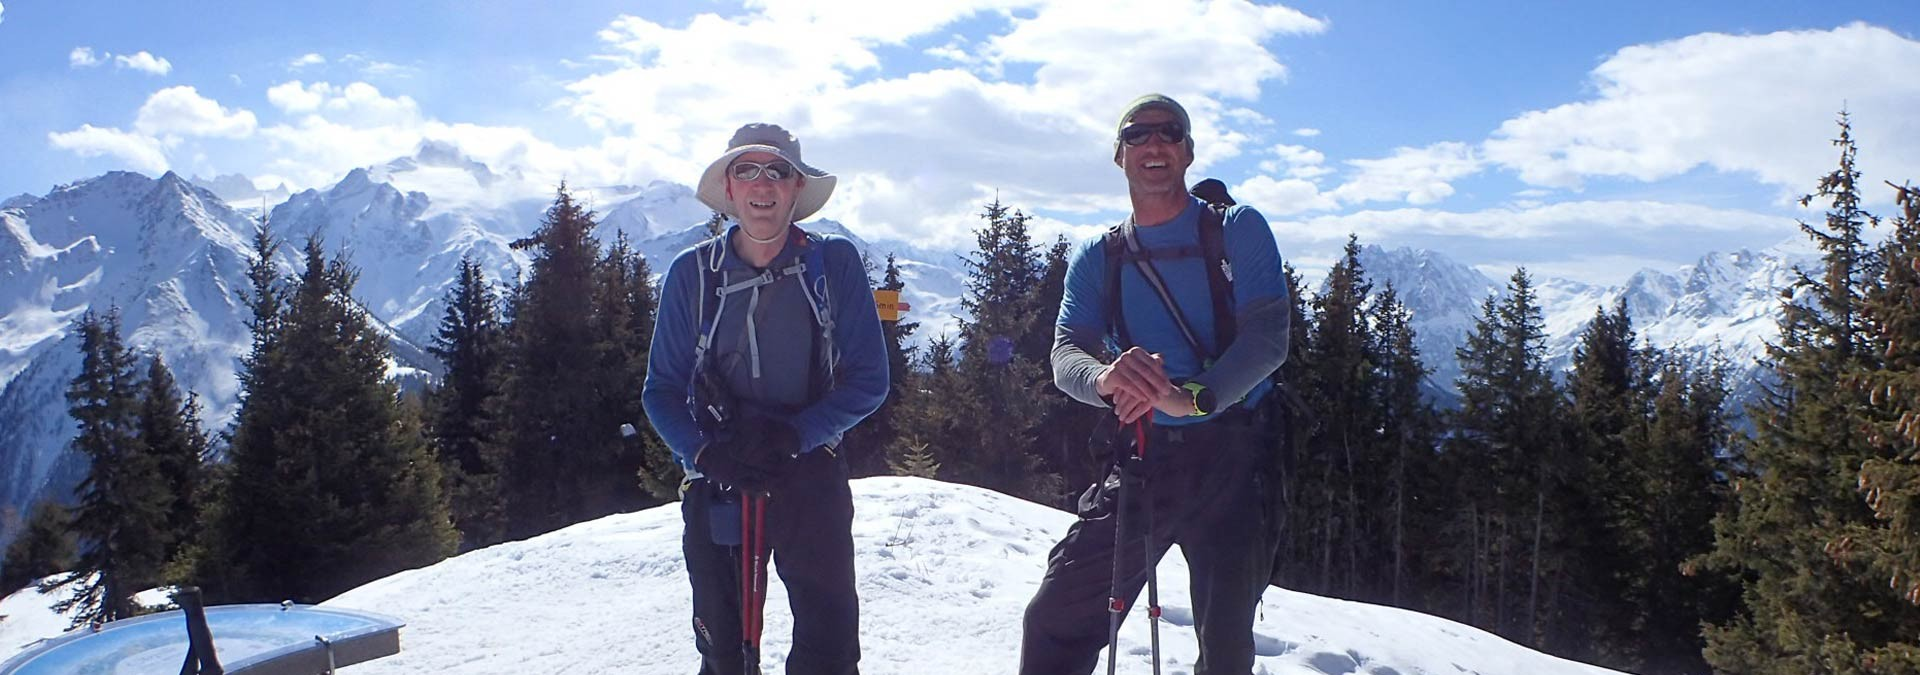 Chamonix Snowshoe Adventure - the Prarion summit in perfect conditions